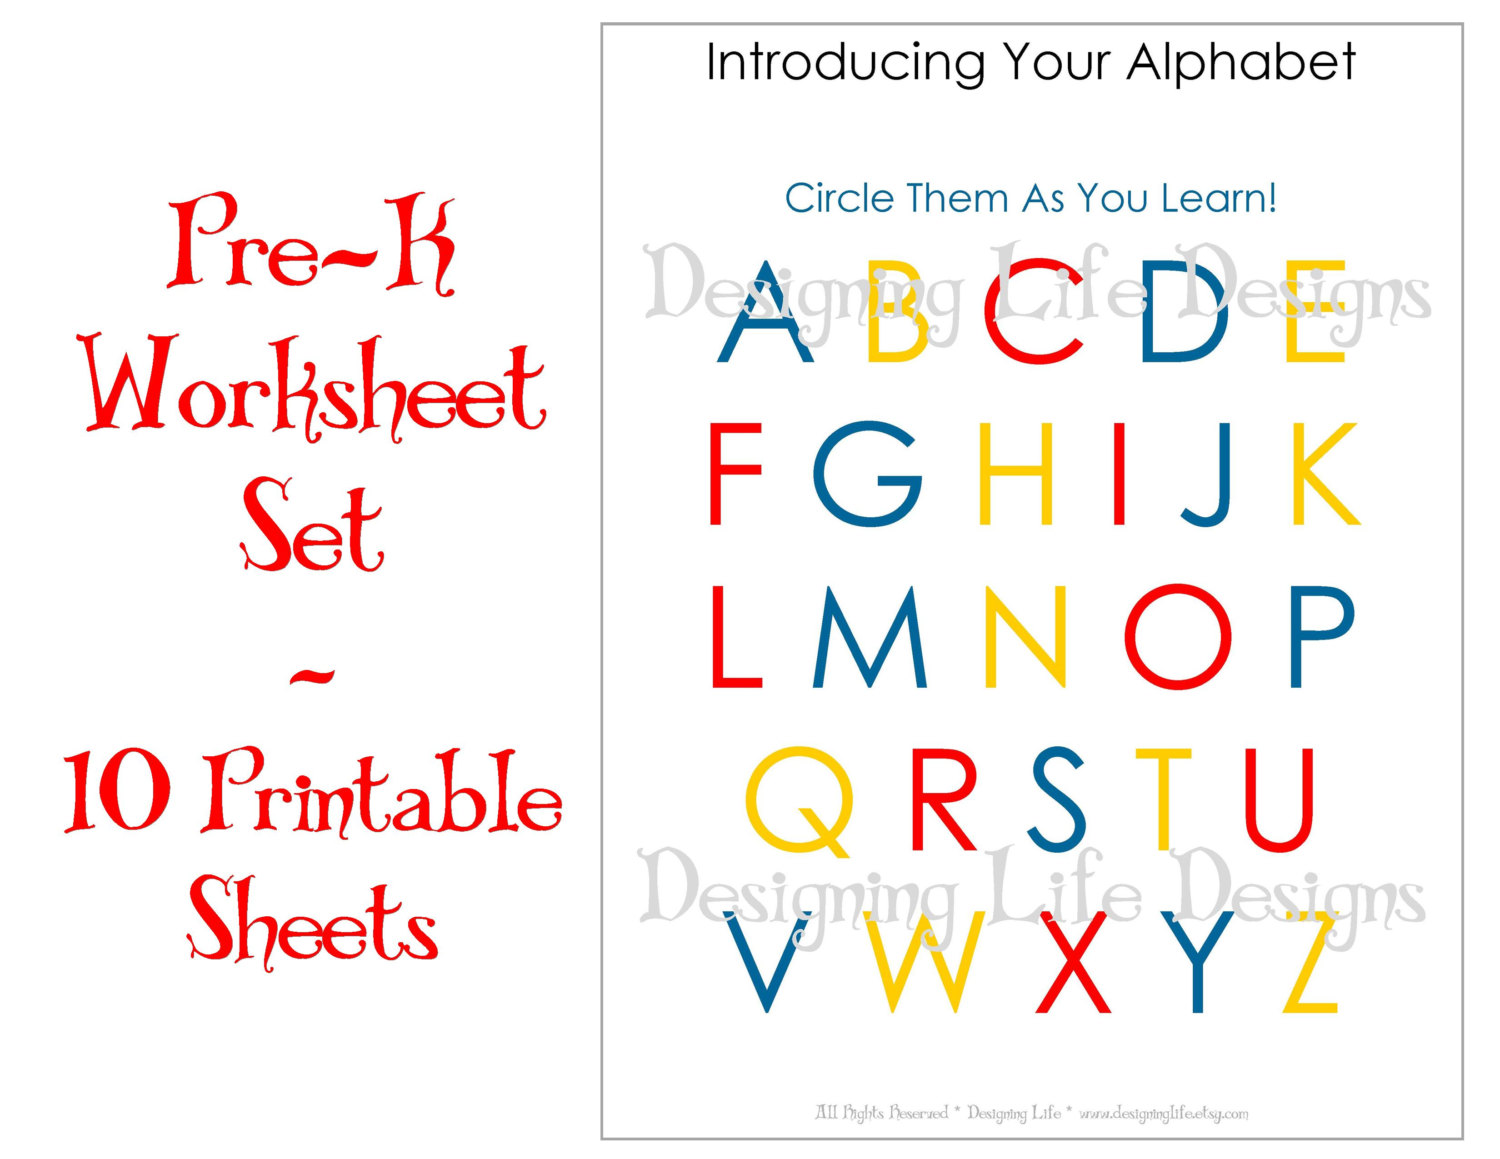 math worksheet : pre k through kindergarten worksheets : Pre Kindergarten Worksheets Free Printables